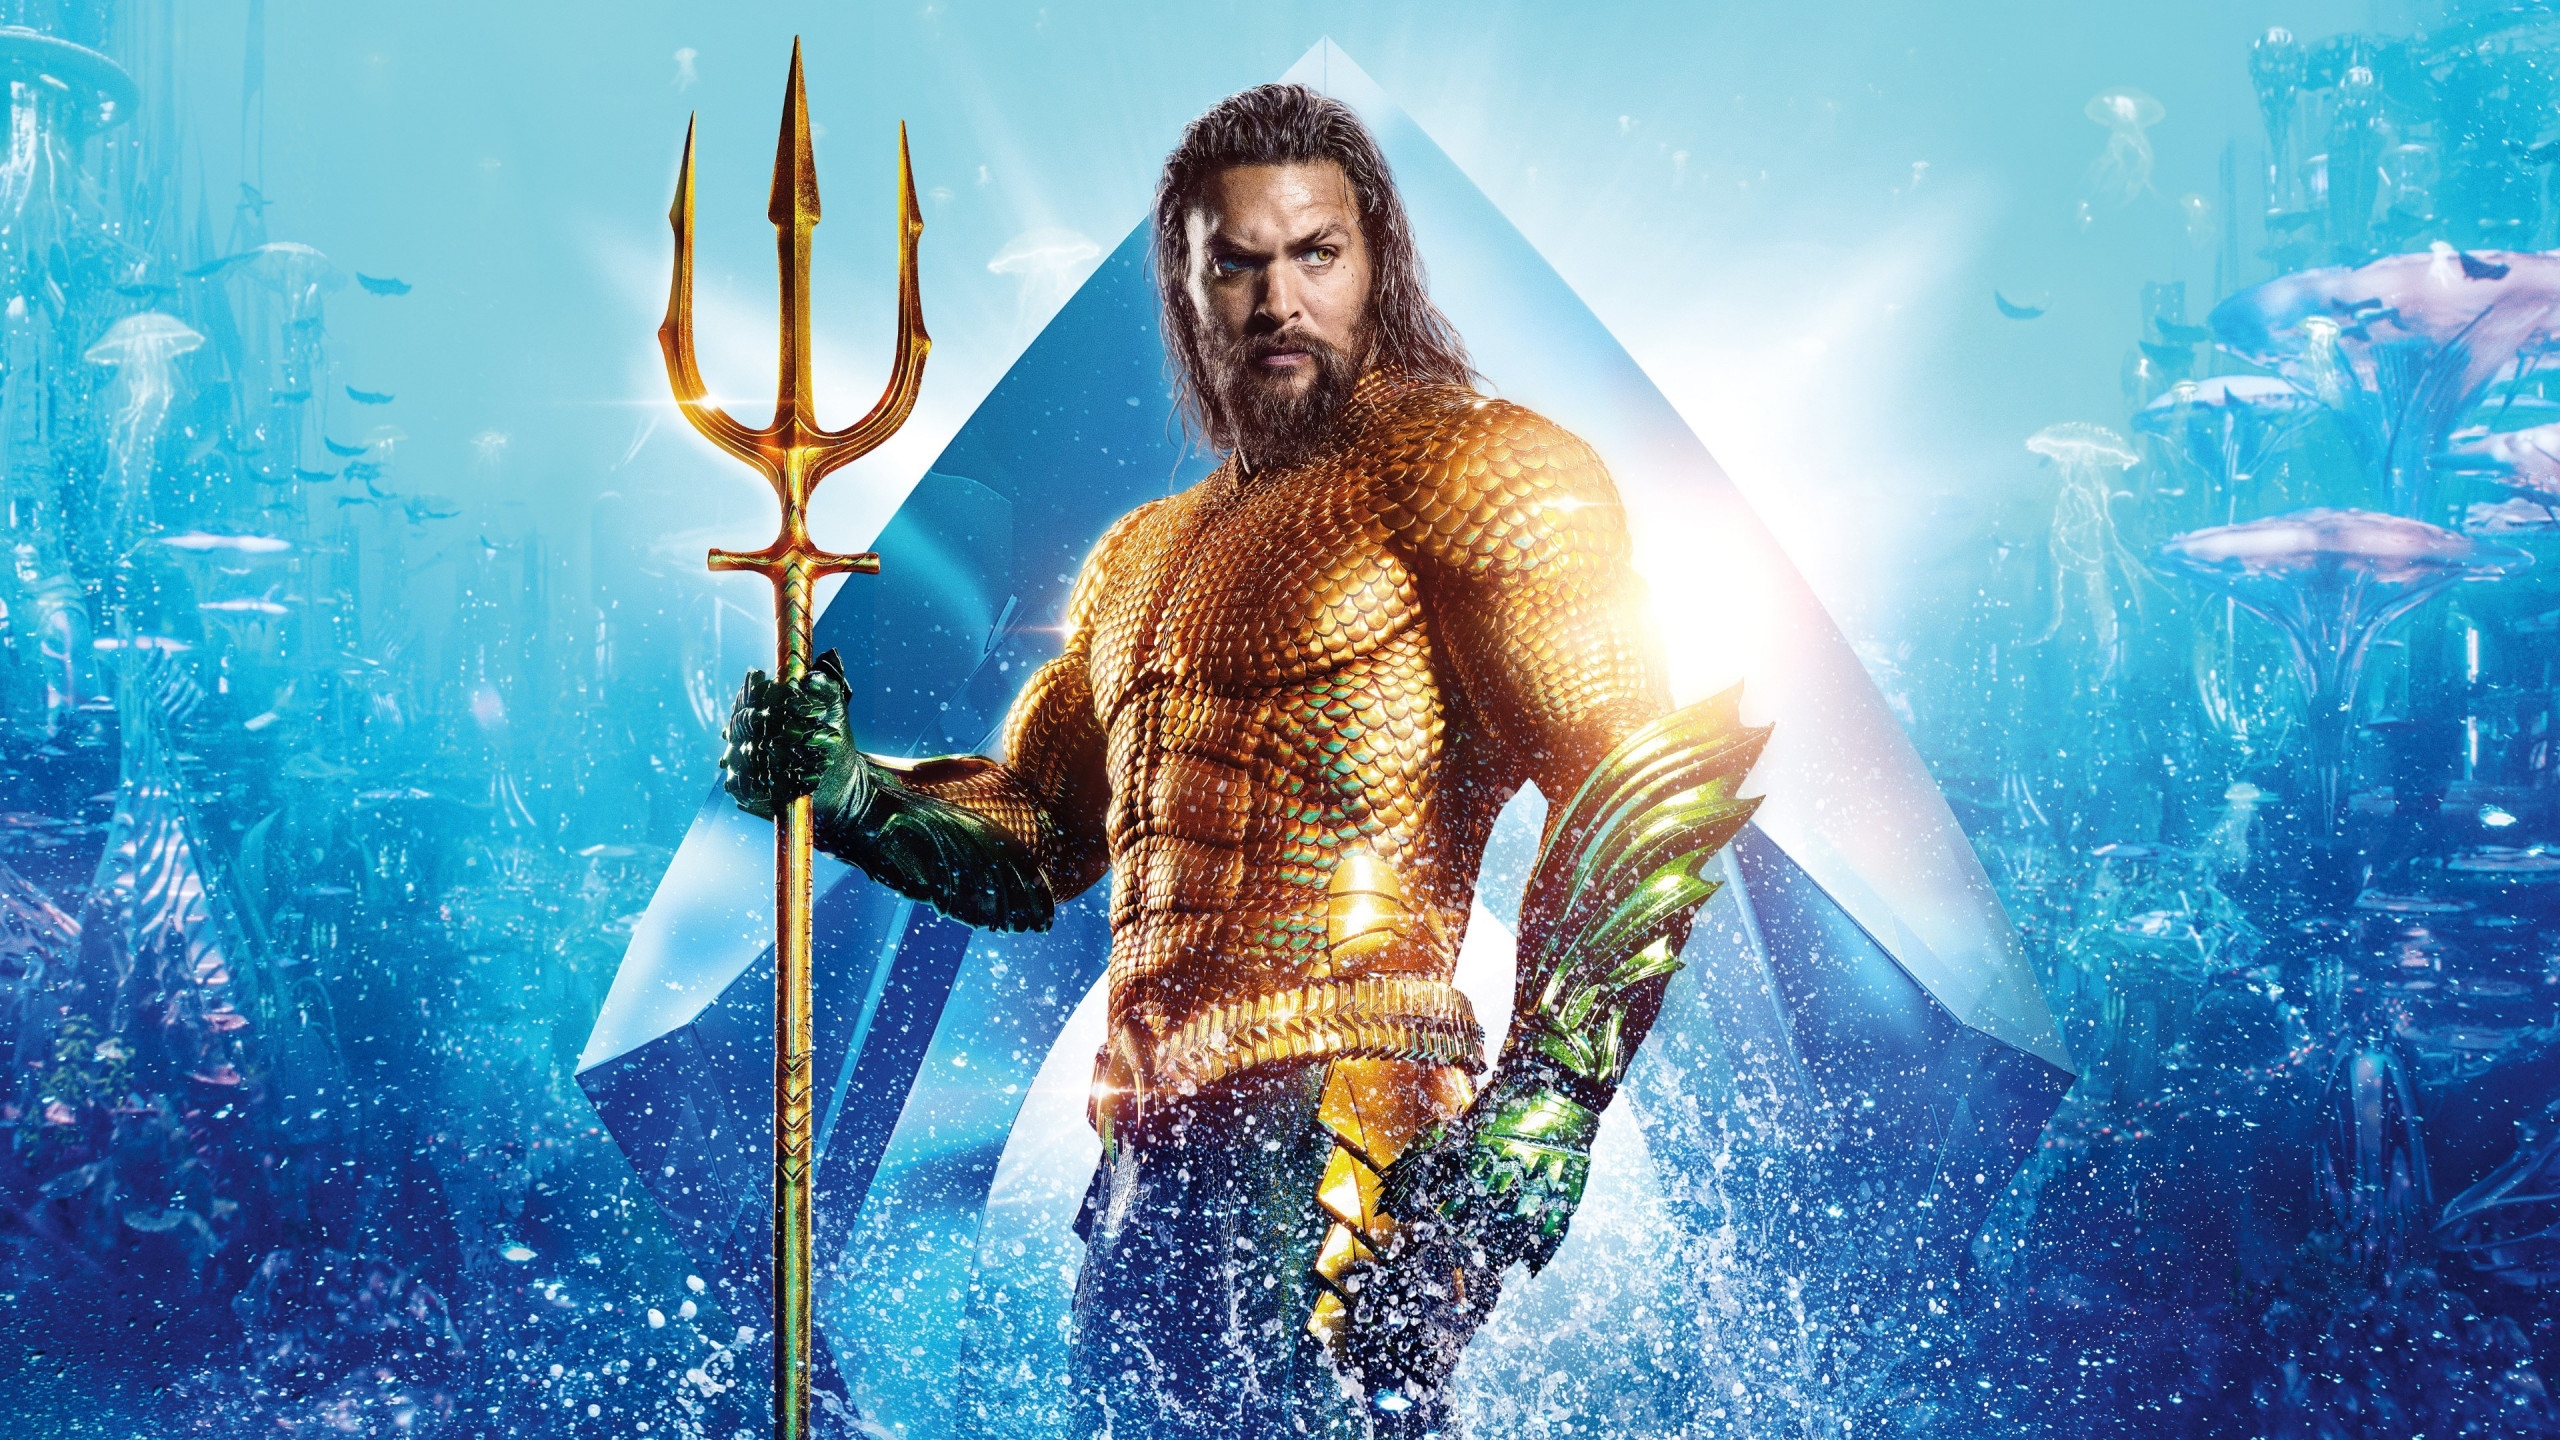 Aquaman Hero wallpaper 2560x1440